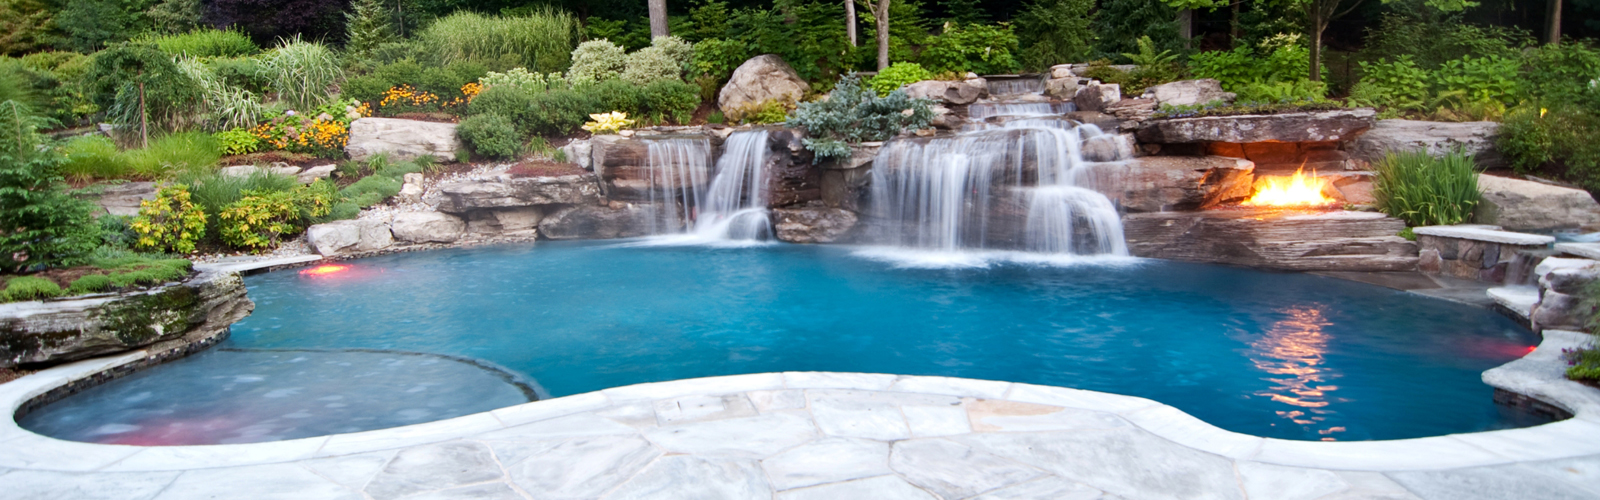 Your Local Experts in Everything Pools, Patios & Plants